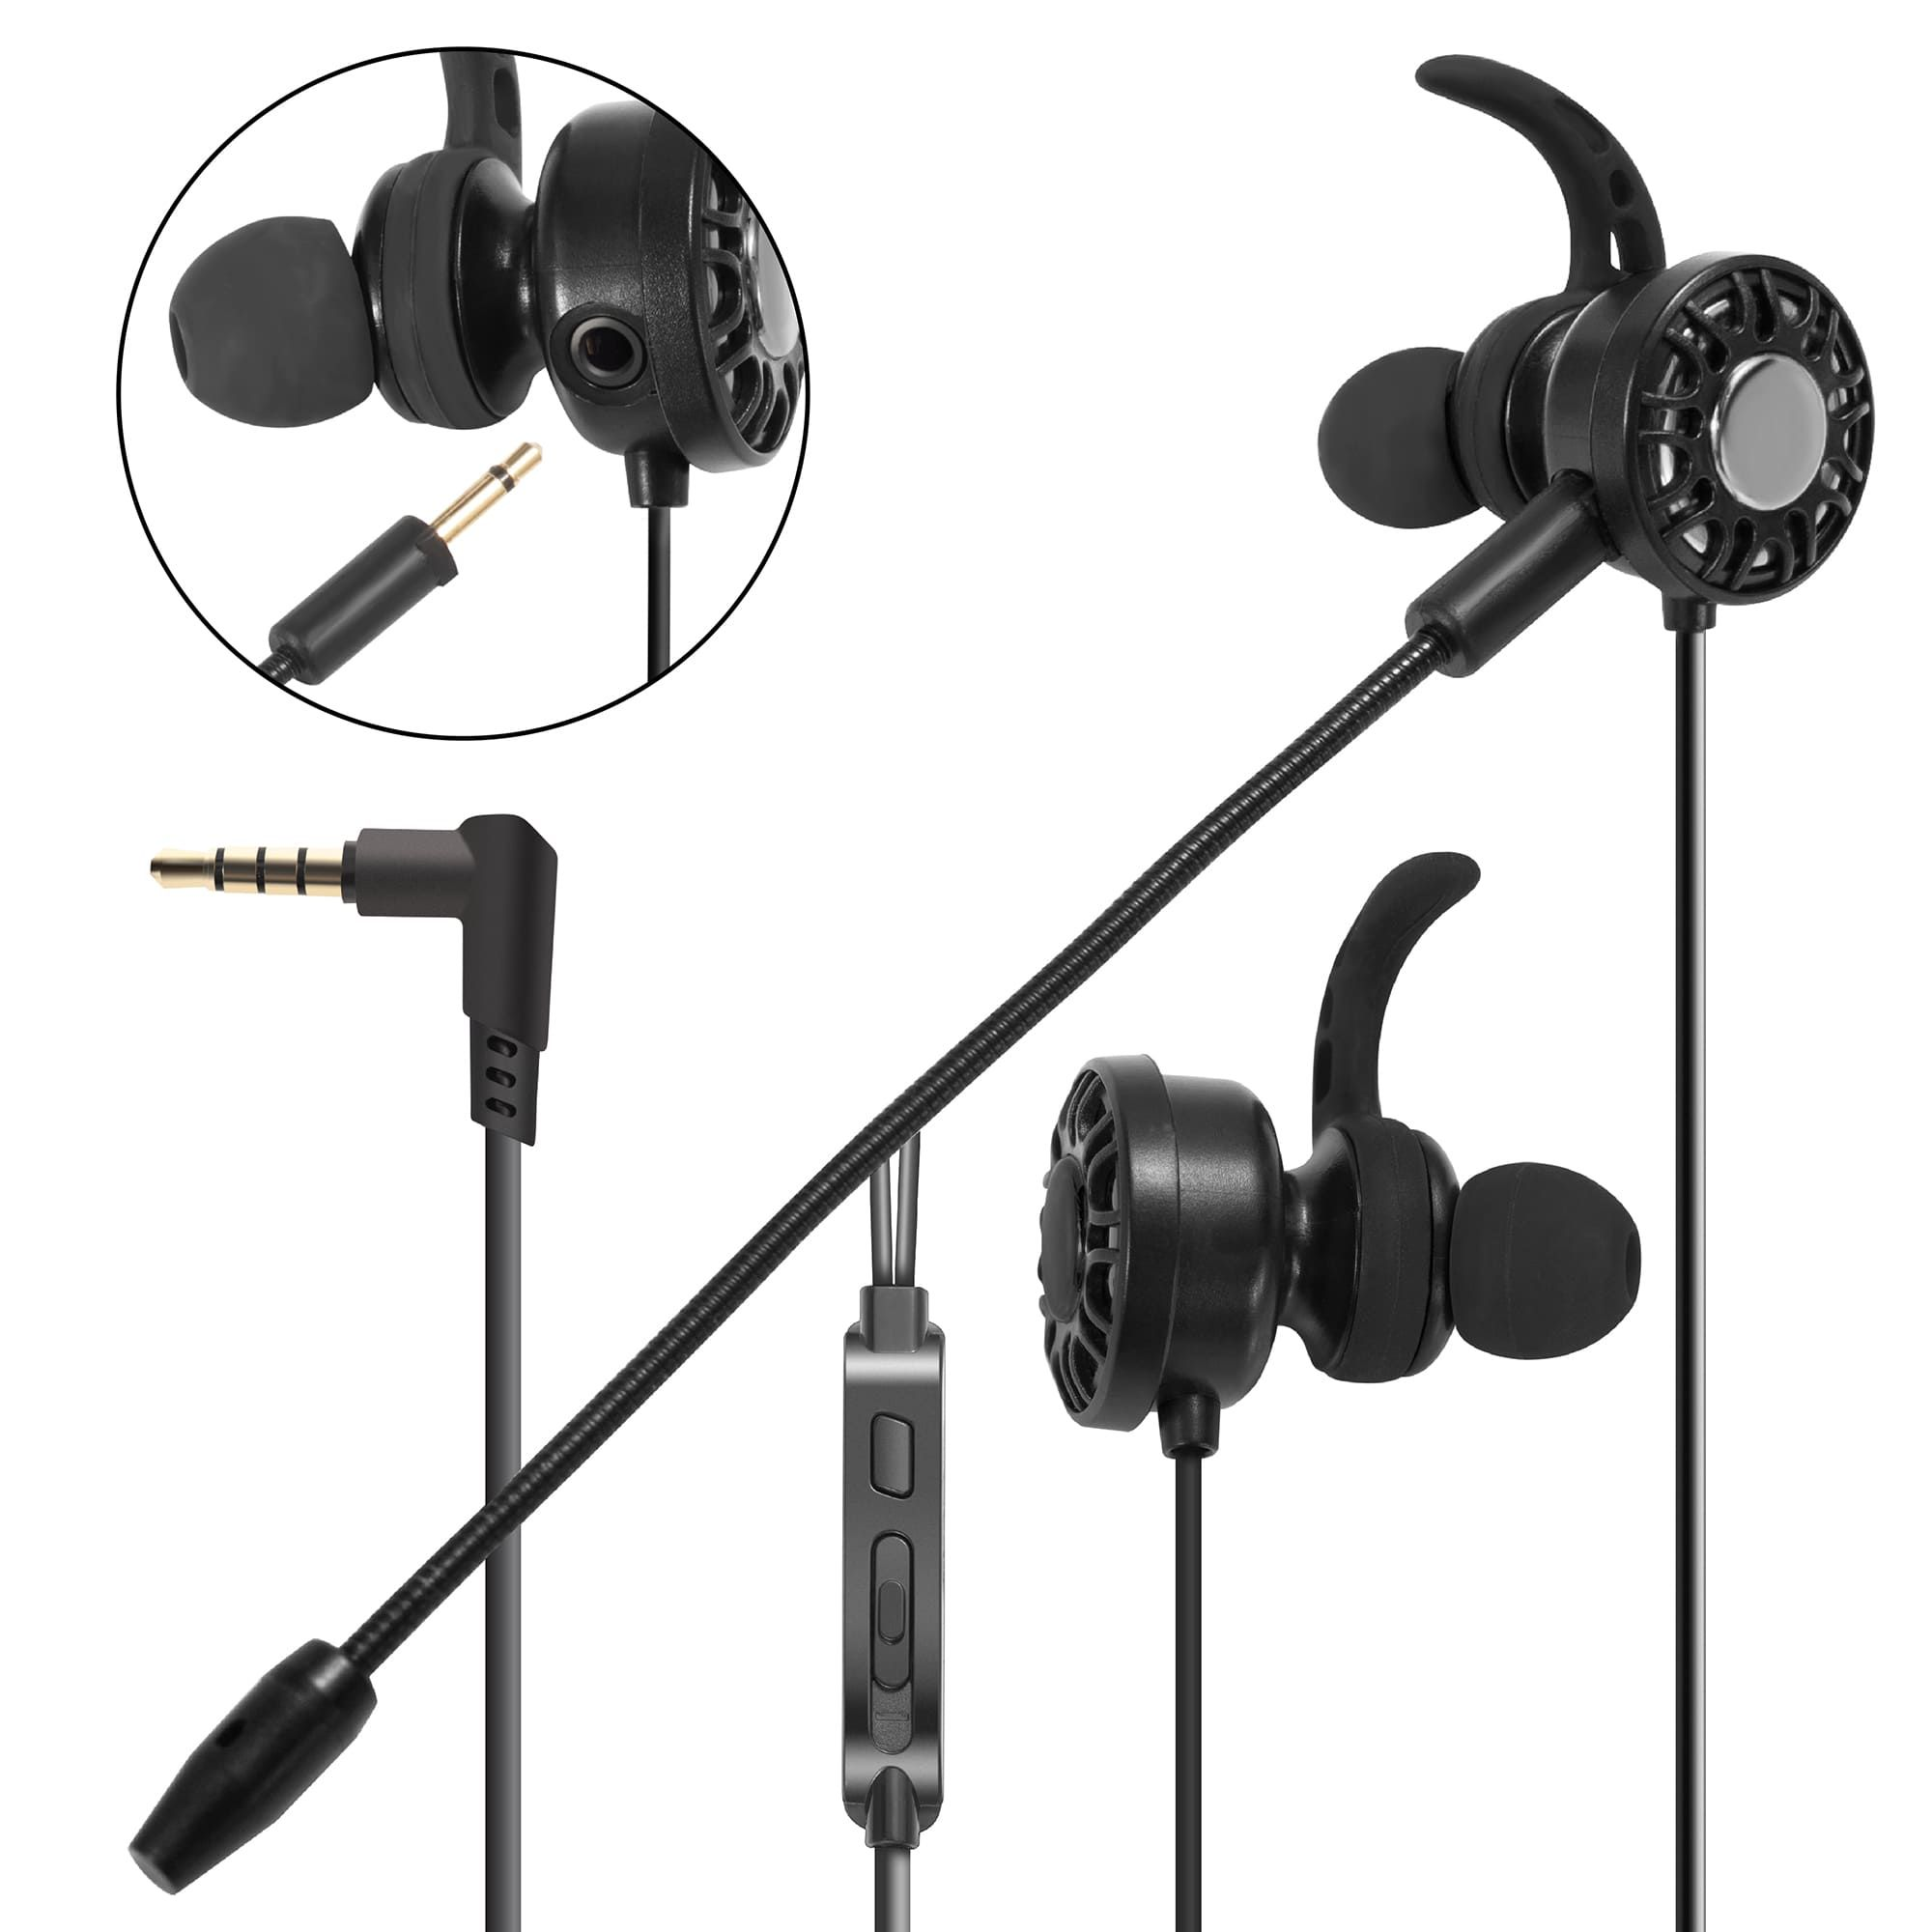 3 5mm Gaming Earbuds With Mic Insten In Ear Headset Stereo Headphone With Dual Microphone Detachable And Built In For Ps4 Nintendo Switch Lite Pc Mobile Game Cell Phone Smartphone Black Walmart Com